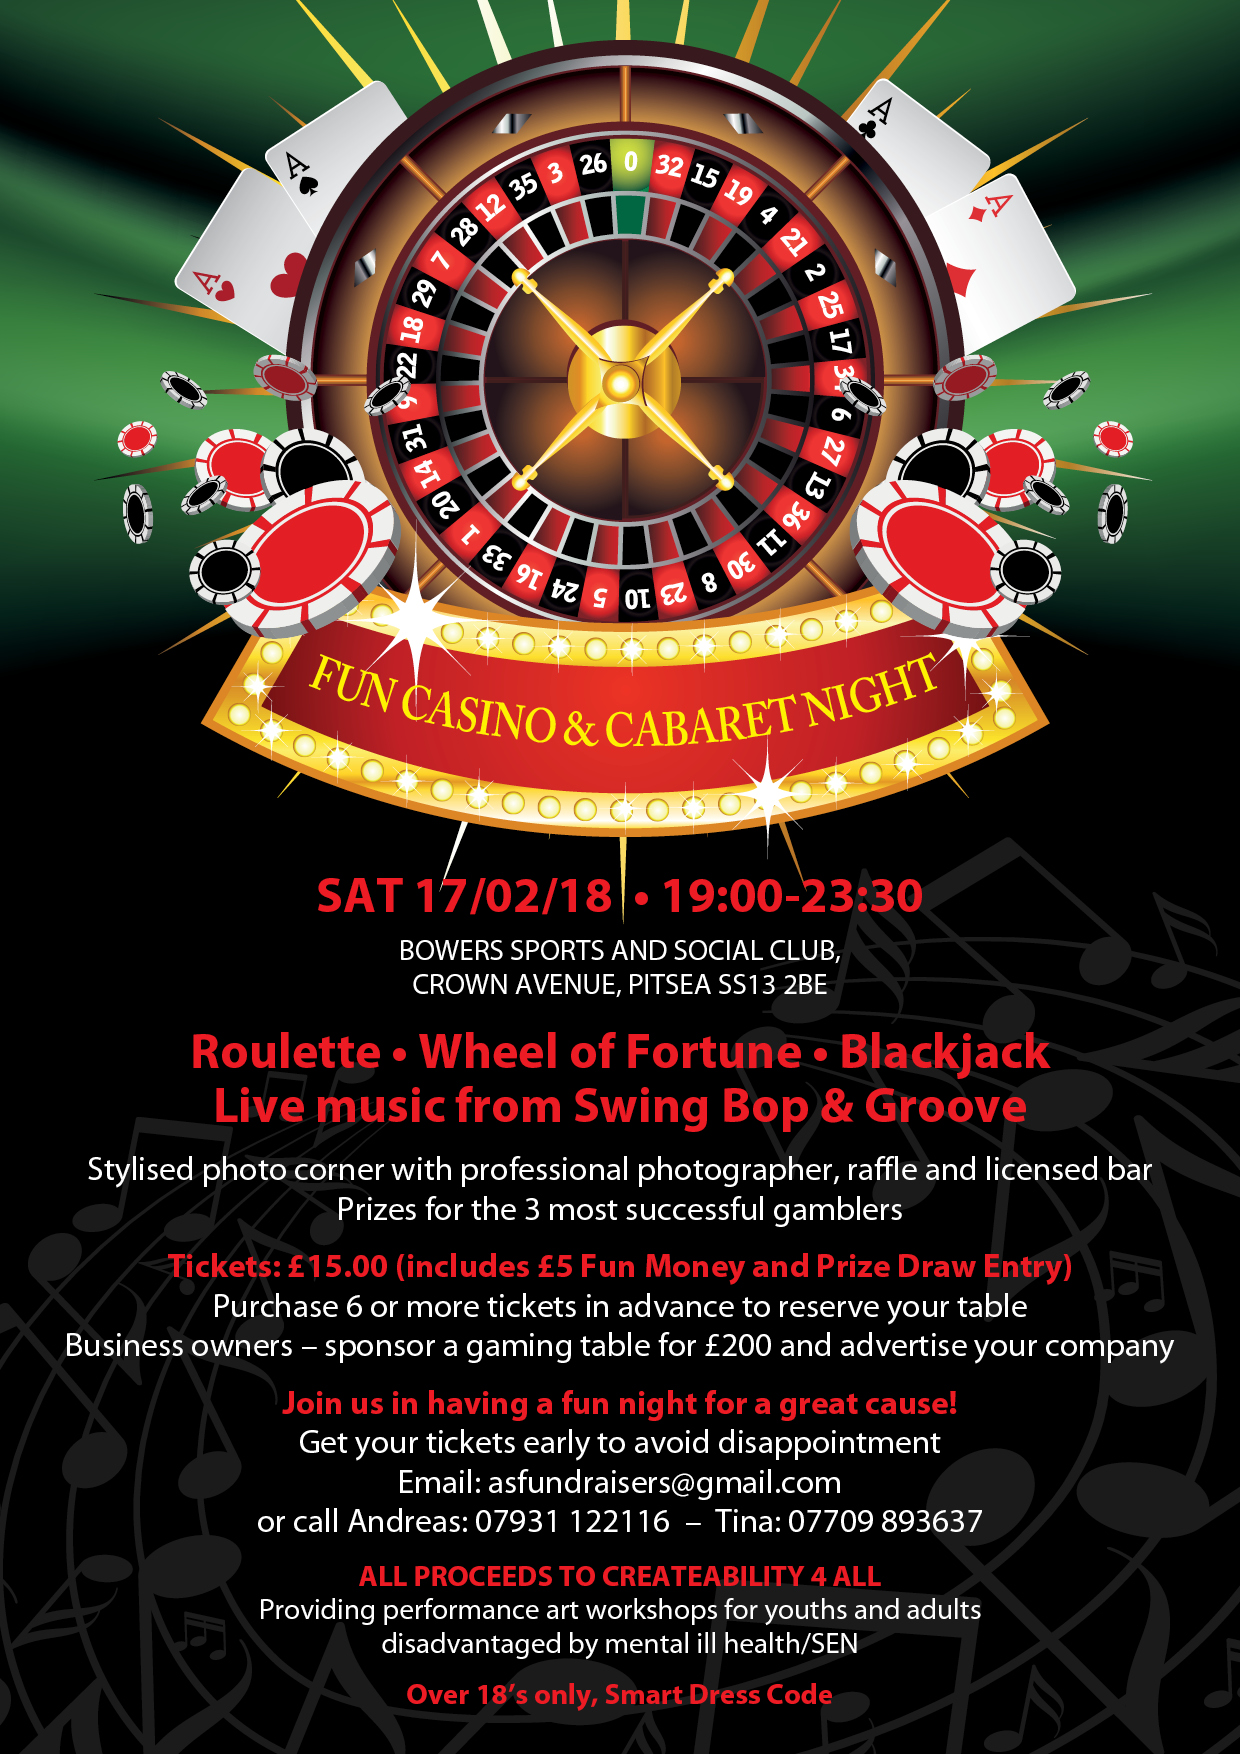 Fun Casino & Cabaret Night